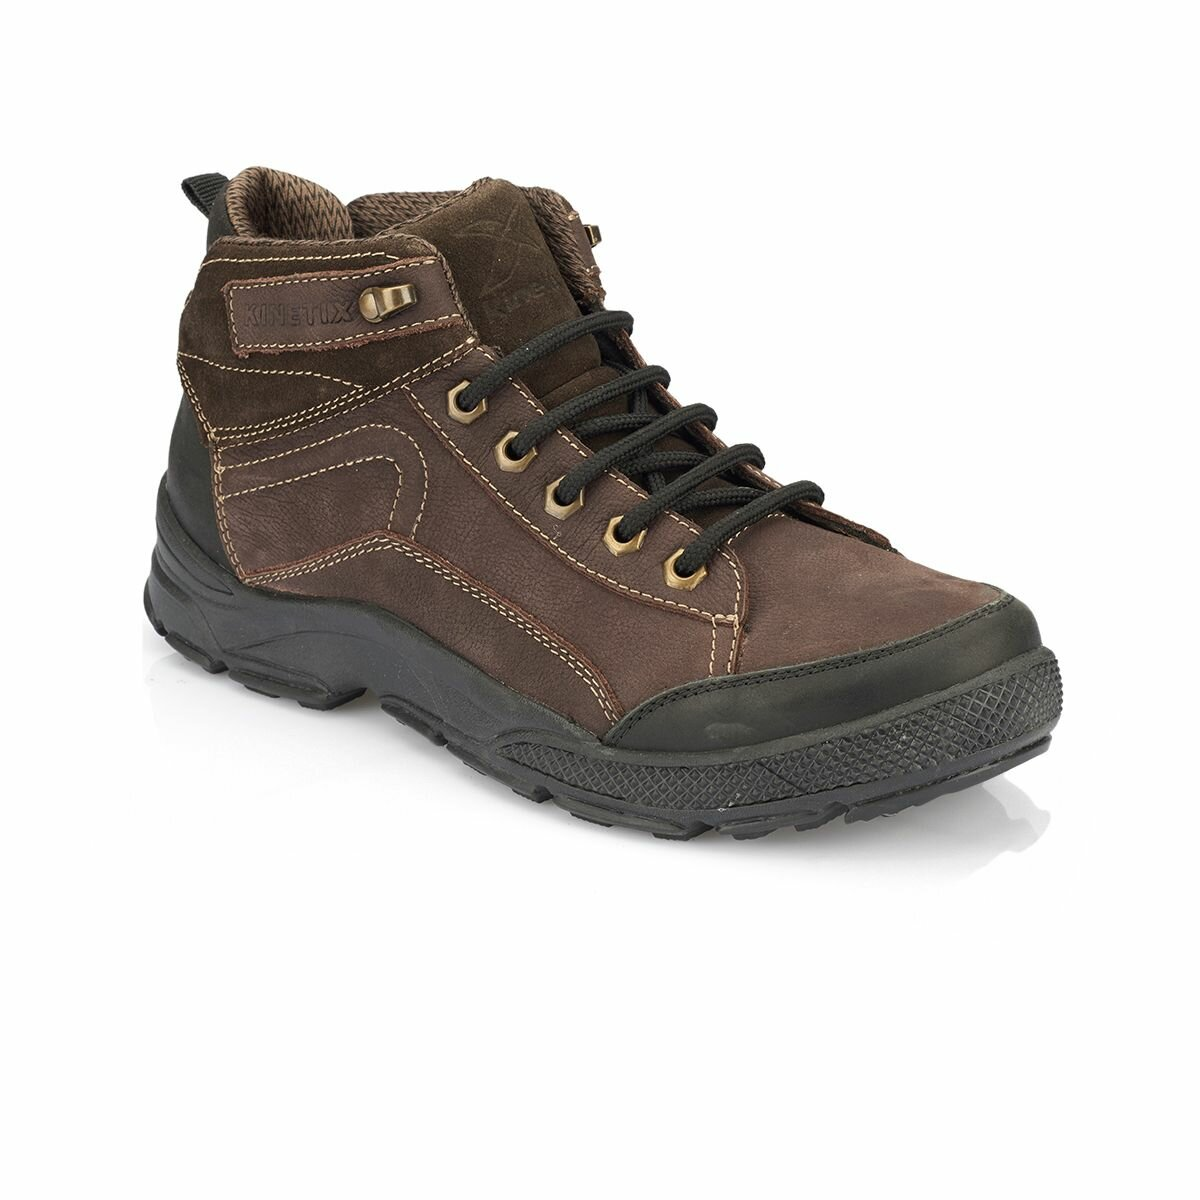 FLO Mens Outdoor Shoes Casual Daily Use Boots Brown Color Comfortable Durable Shoes Мужские ботинки SADERO KINETIX